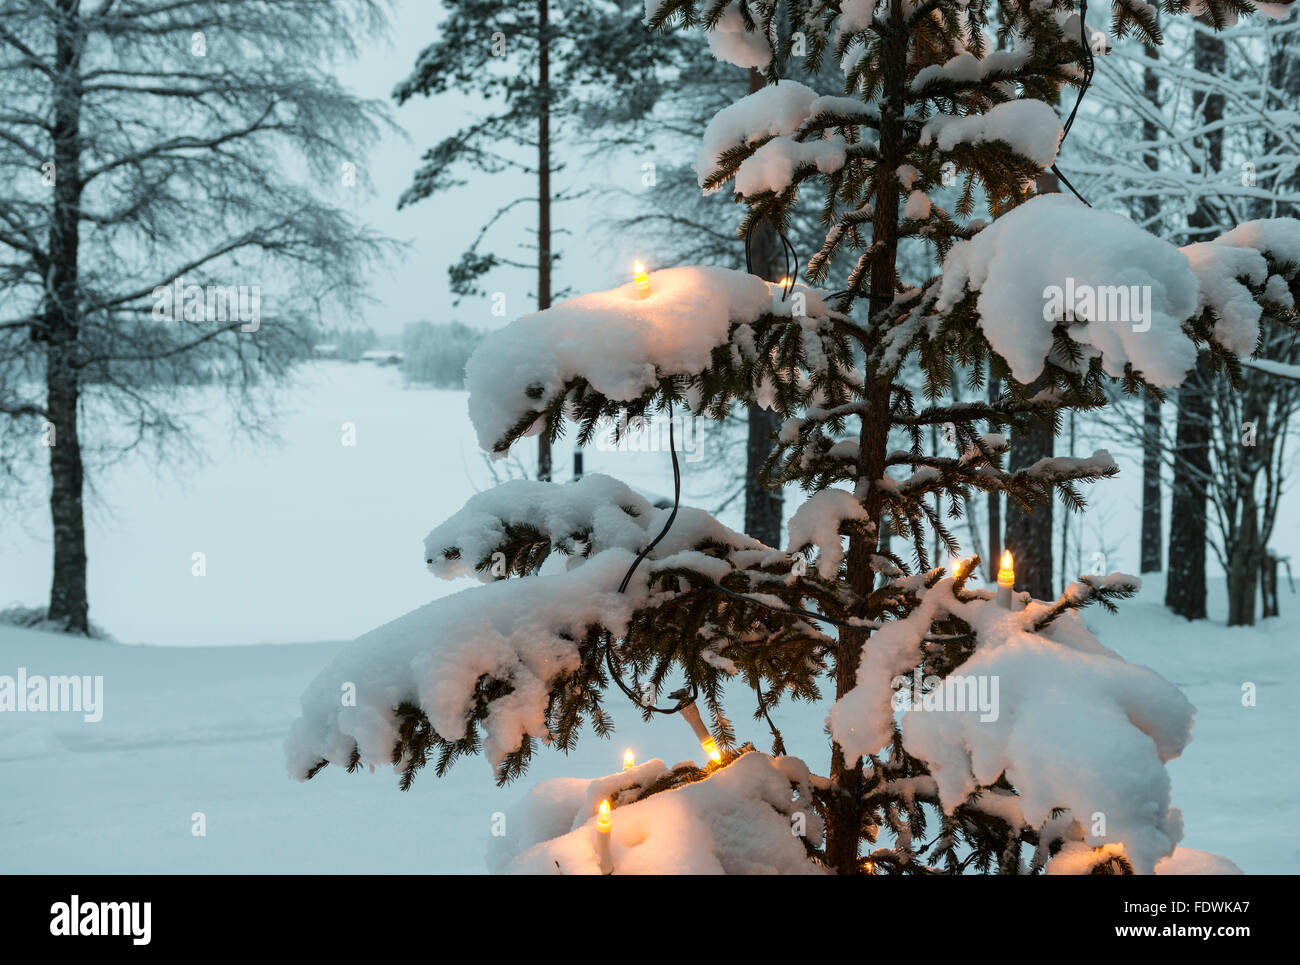 sweden snow dusk stockfotos sweden snow dusk bilder alamy. Black Bedroom Furniture Sets. Home Design Ideas